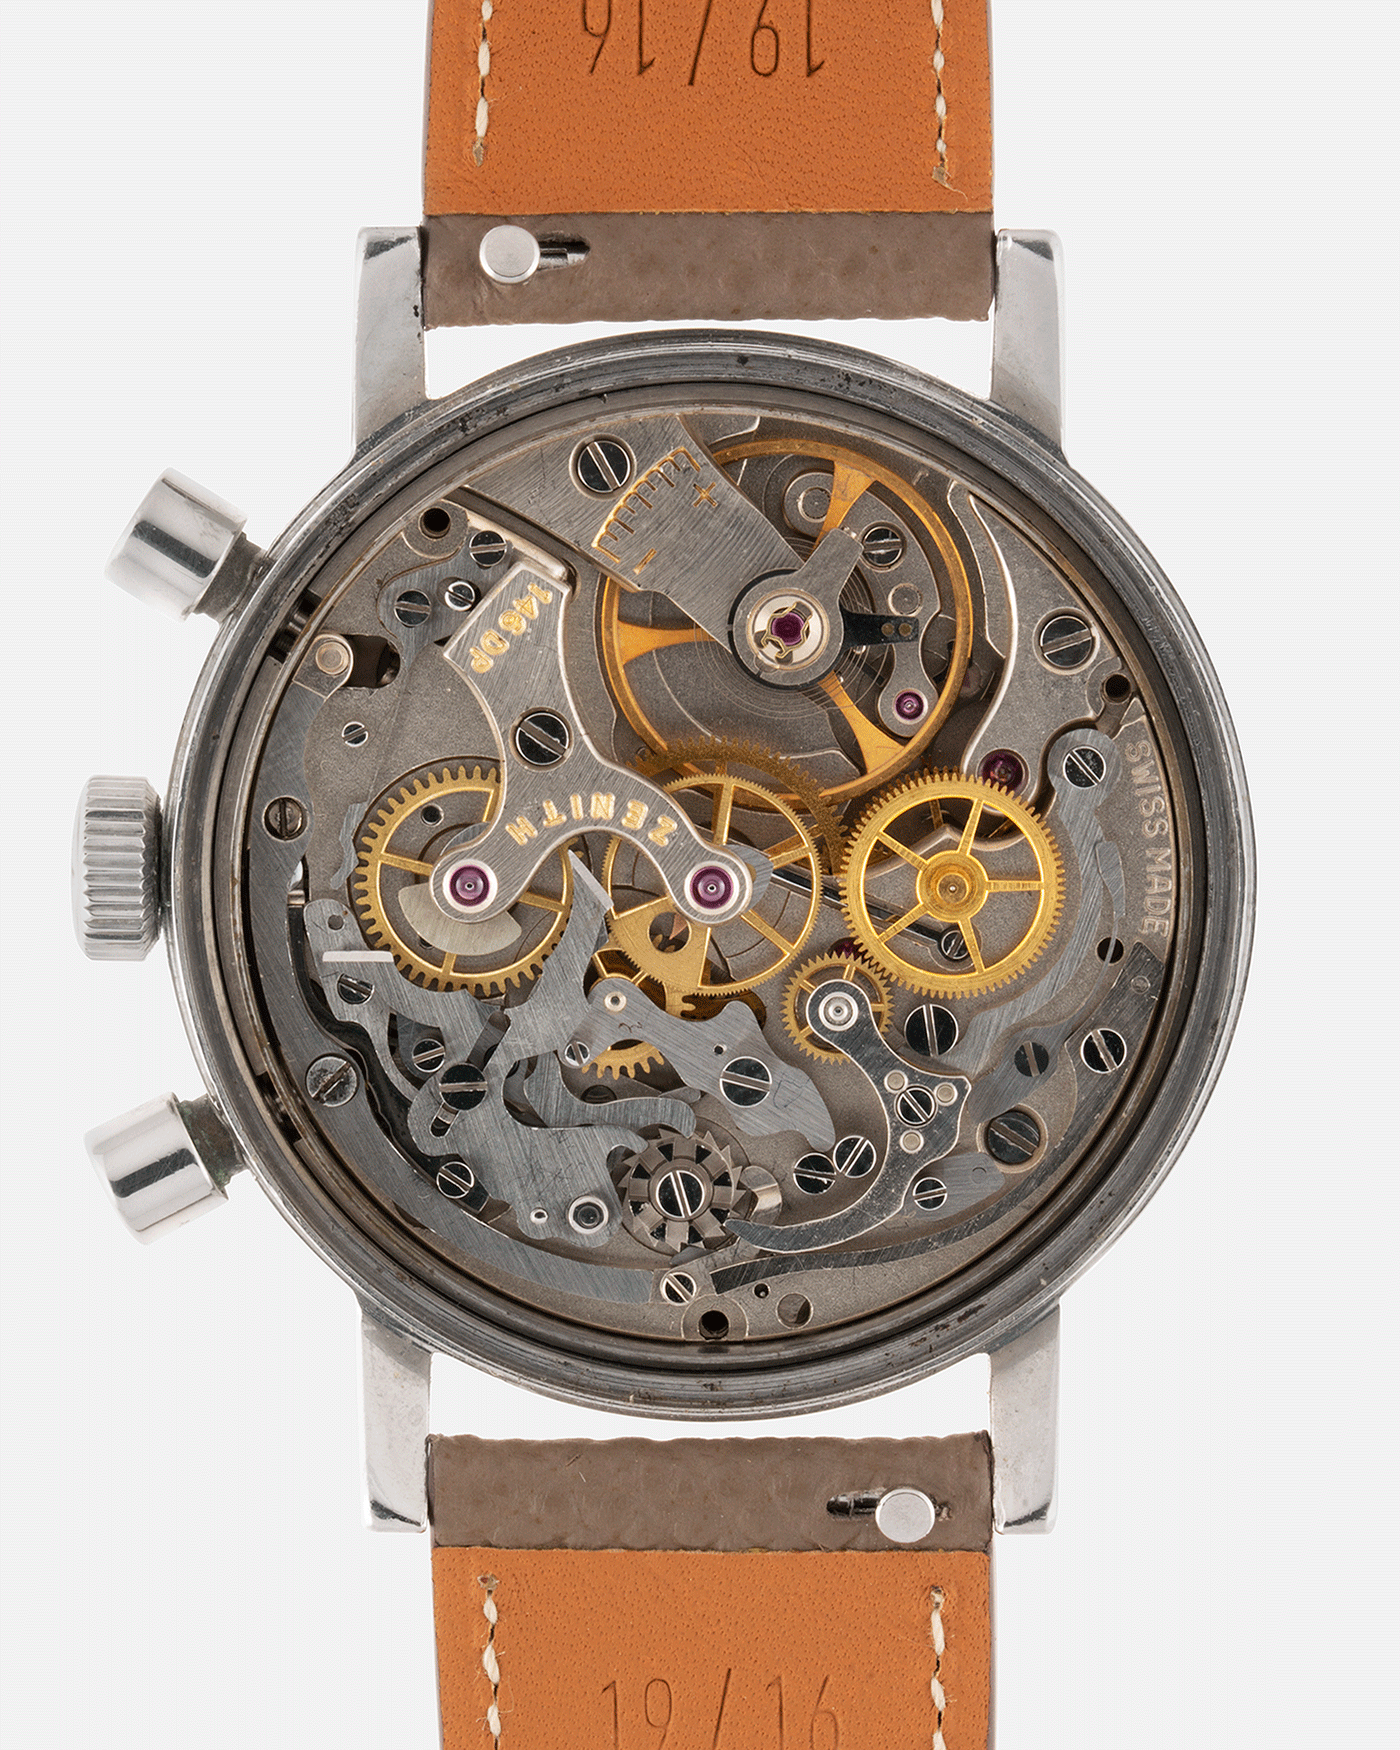 Brand: Zenith Year: 1960's Model: A271 Reference Number: A271 Material: Stainless Steel Movement: Cal 146DP Case Diameter: 37mm Lug Width: 19mm Strap: Nostime Taupe Grained Calf